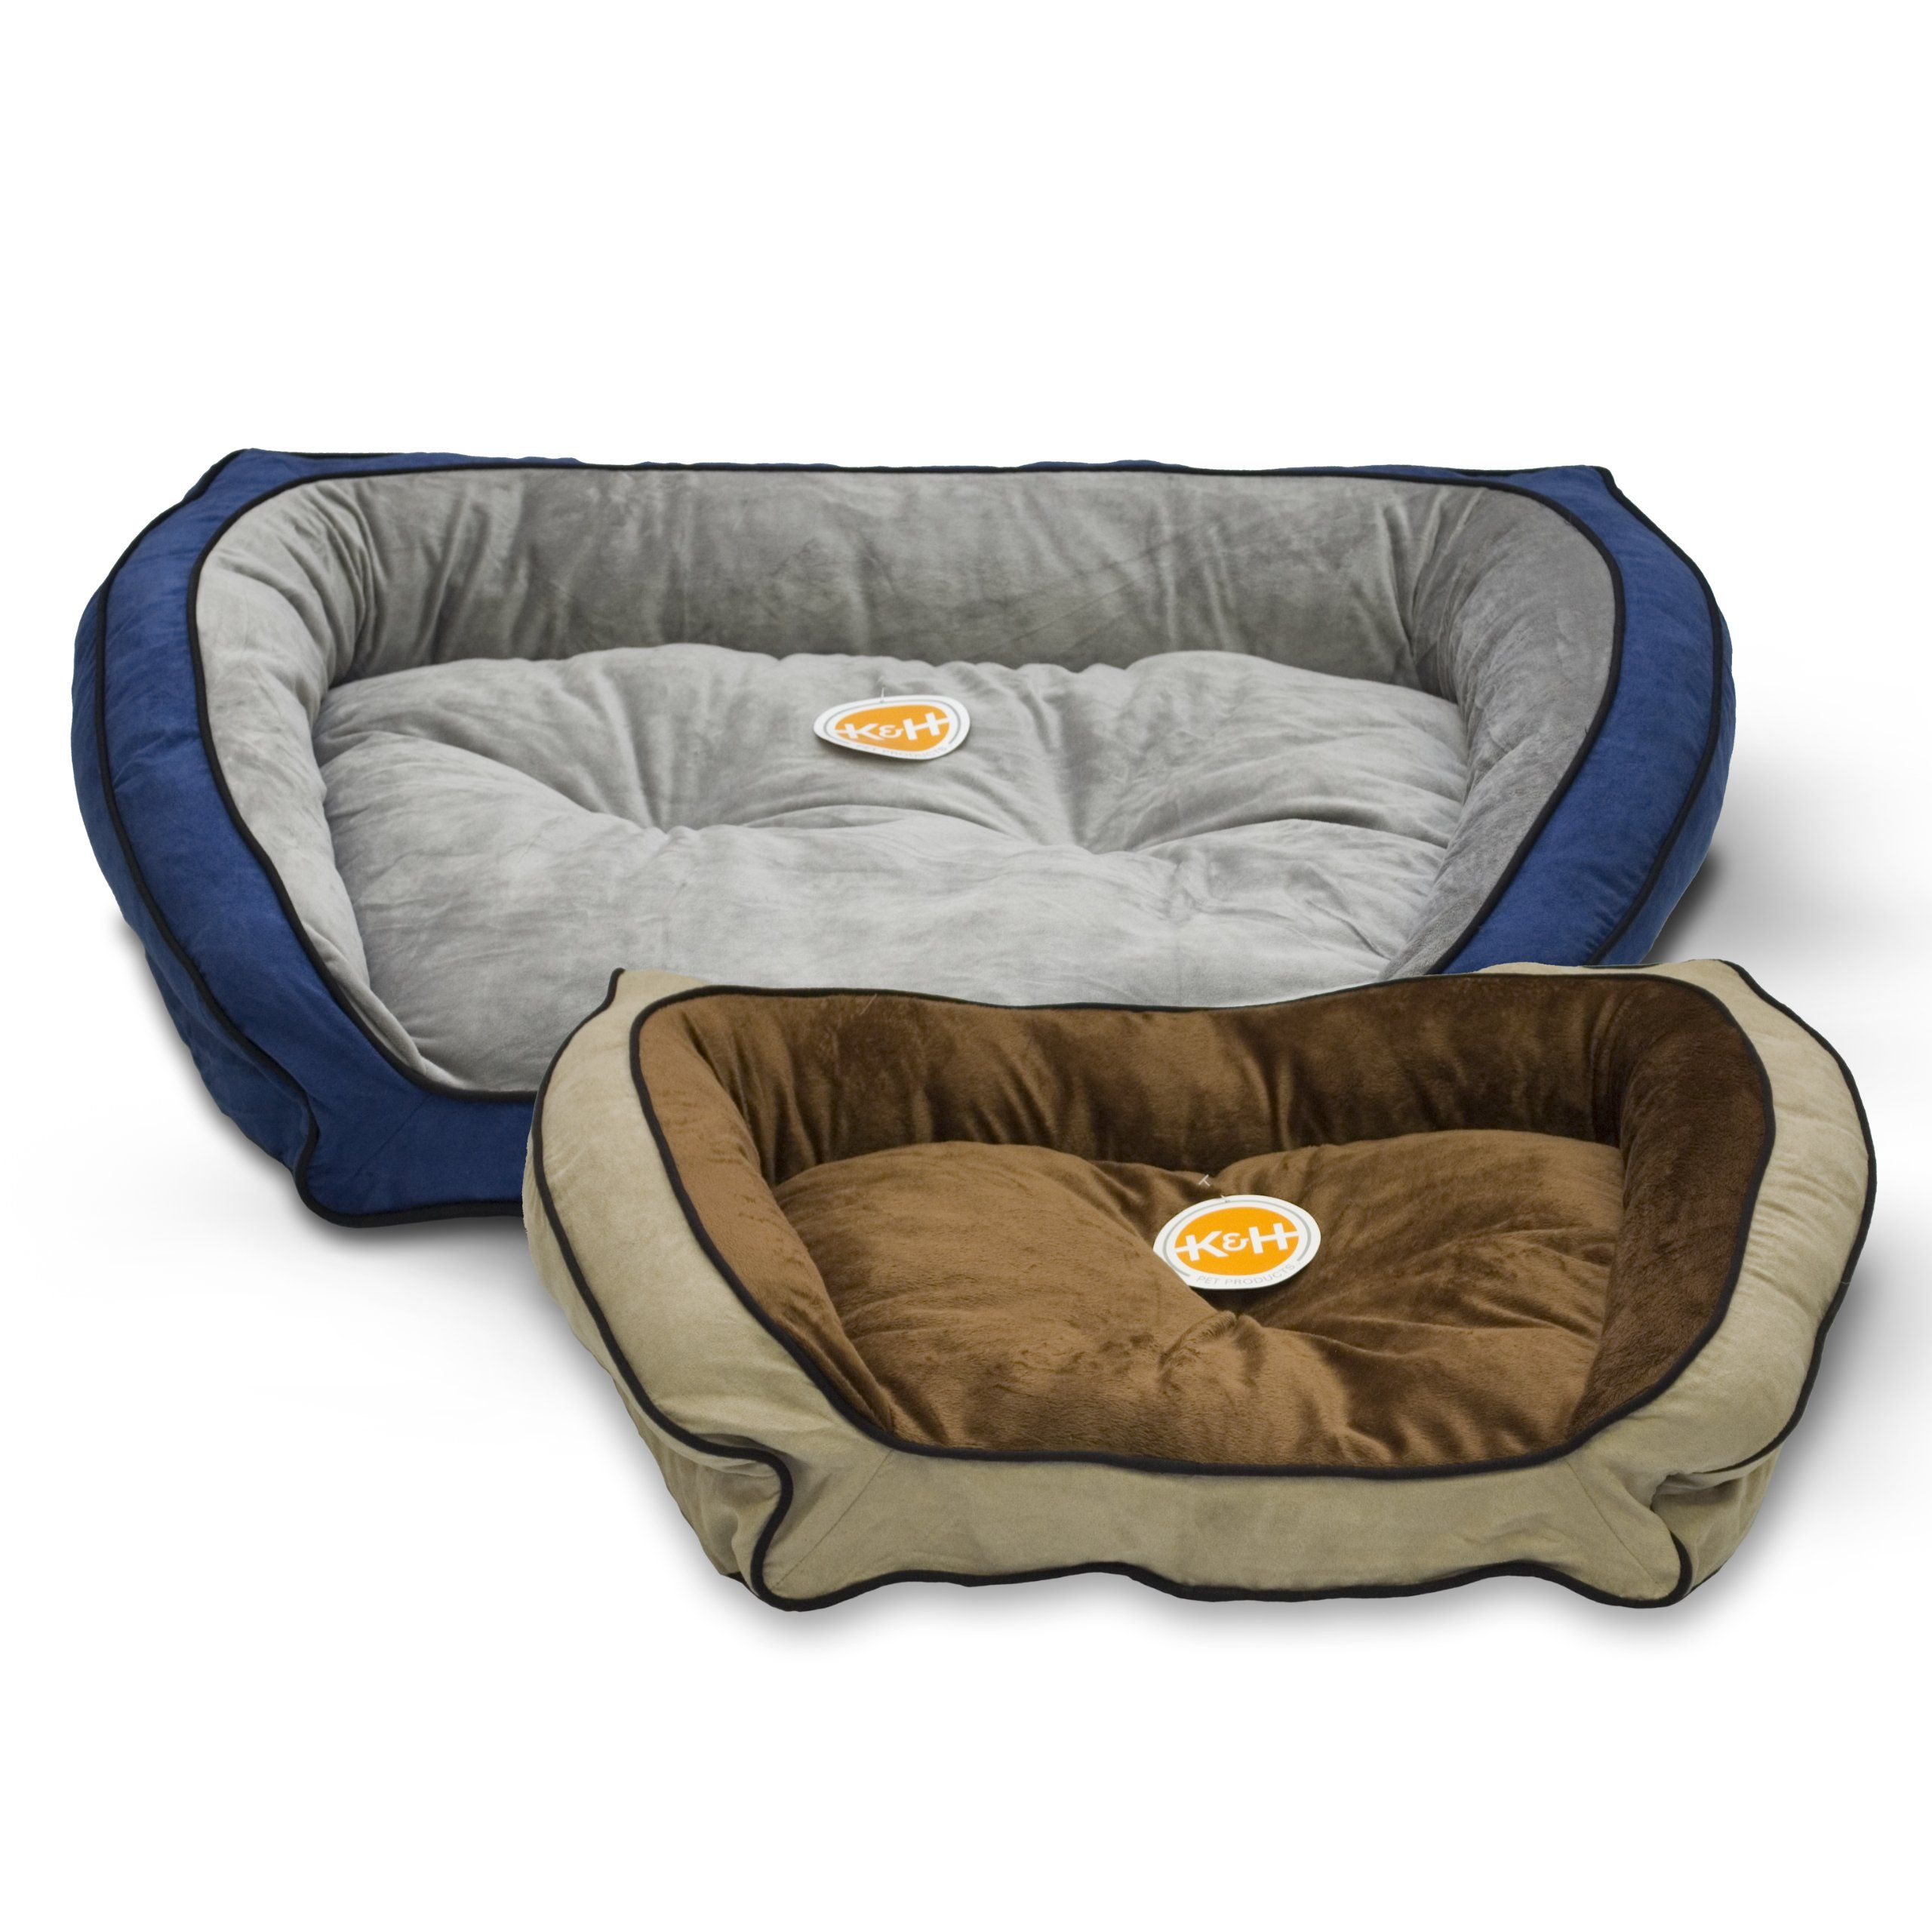 Kandh Pet Products Bolster Couch Pet Bed Large Mocha Tan 28 X 40 Click On The Image For Additional Details It Is An Couch Pet Bed Dog Bed Furniture Dog Bed